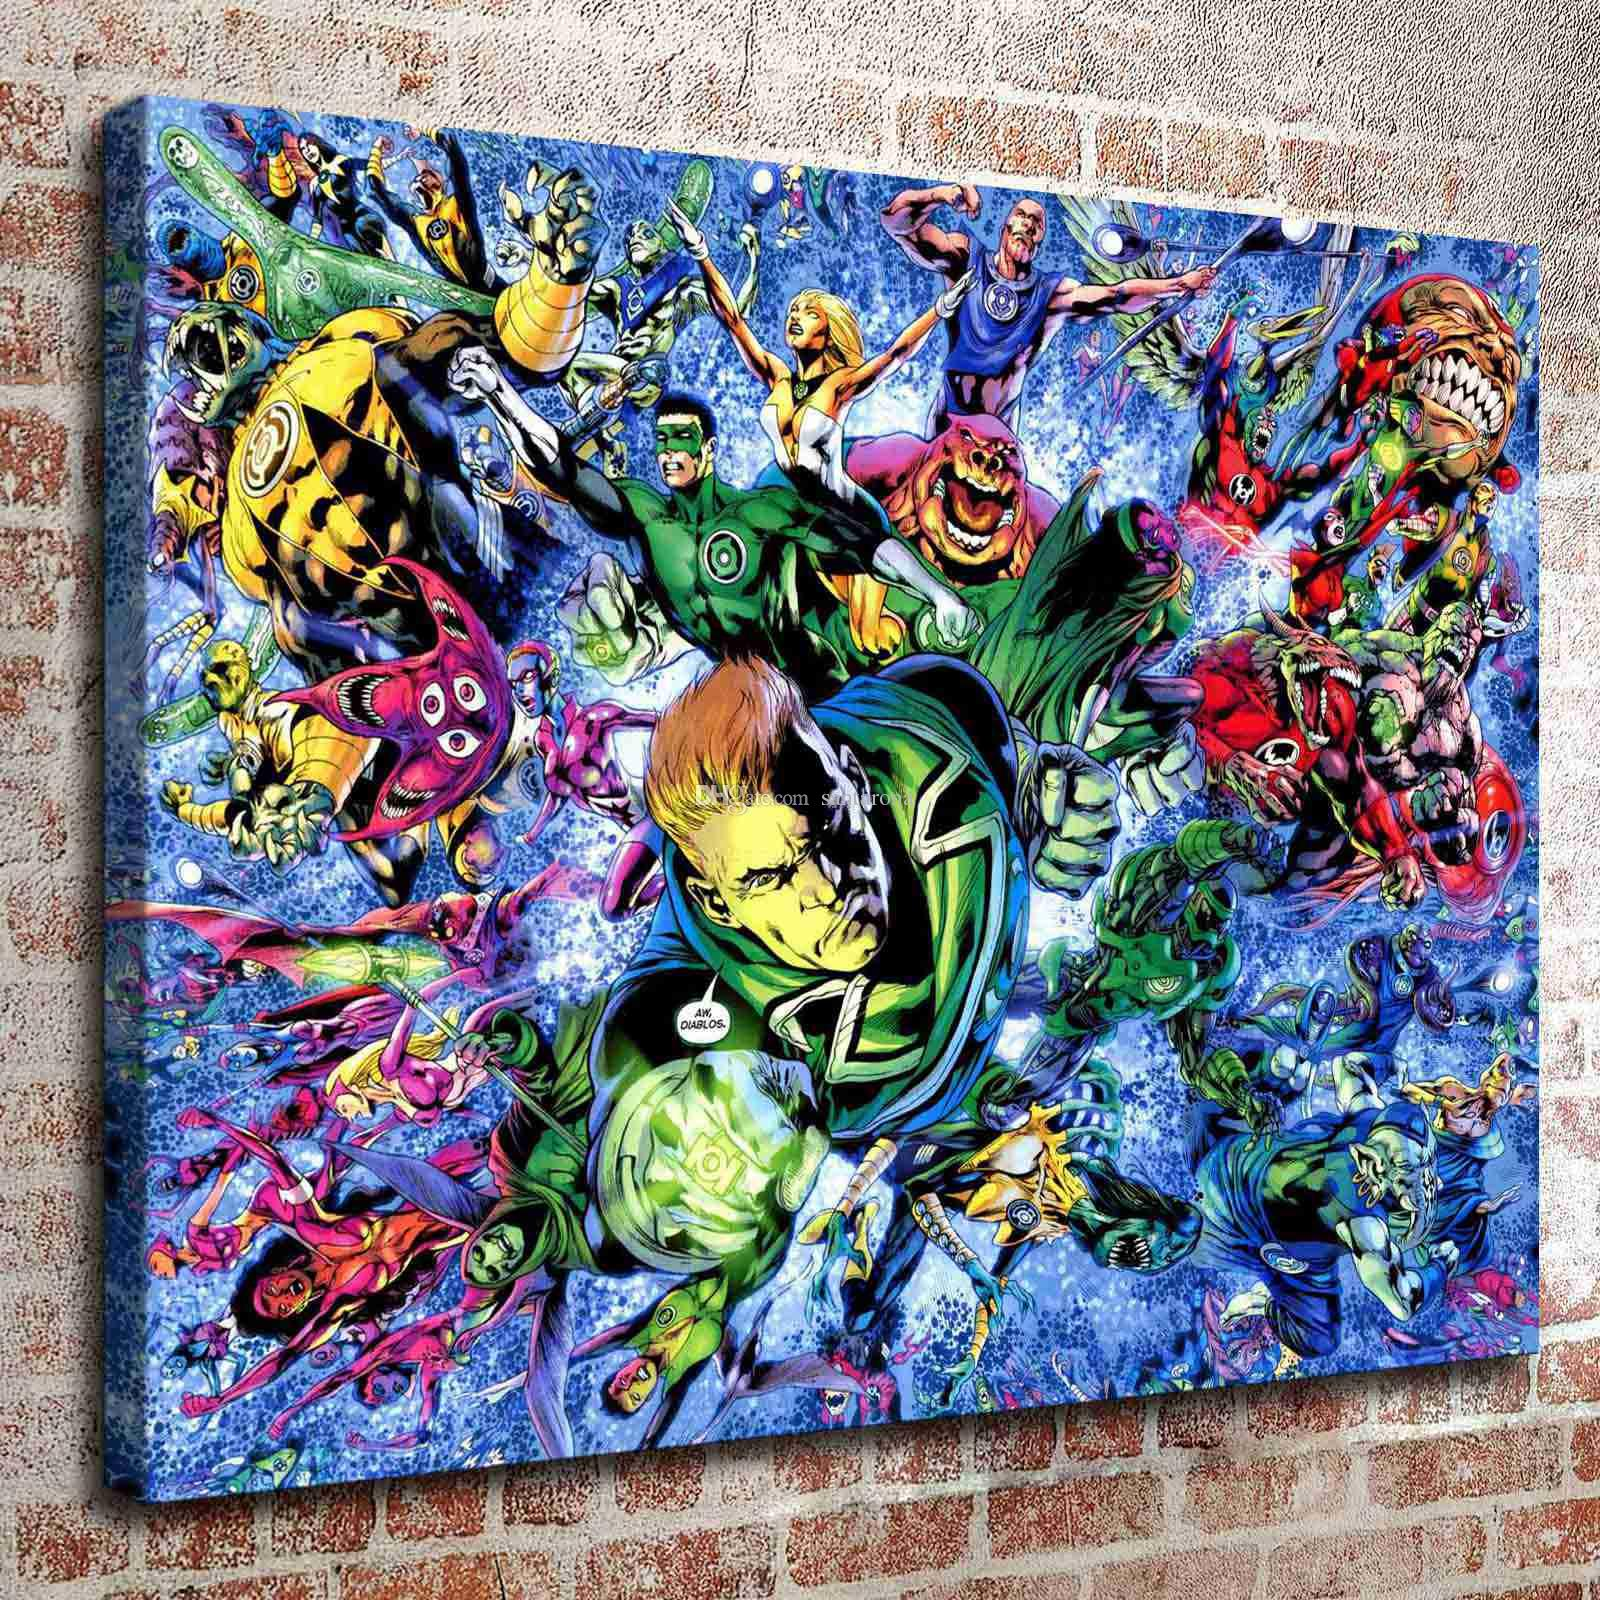 2018 No Frame Green Lantern Five Hd Canvas Print Wall Art Oil Painting Pictures Home Decor Bedroom Living Room Kitchen Decoration From Santarona ...  sc 1 st  DHgate.com & 2018 No Frame Green Lantern Five Hd Canvas Print Wall Art Oil ...